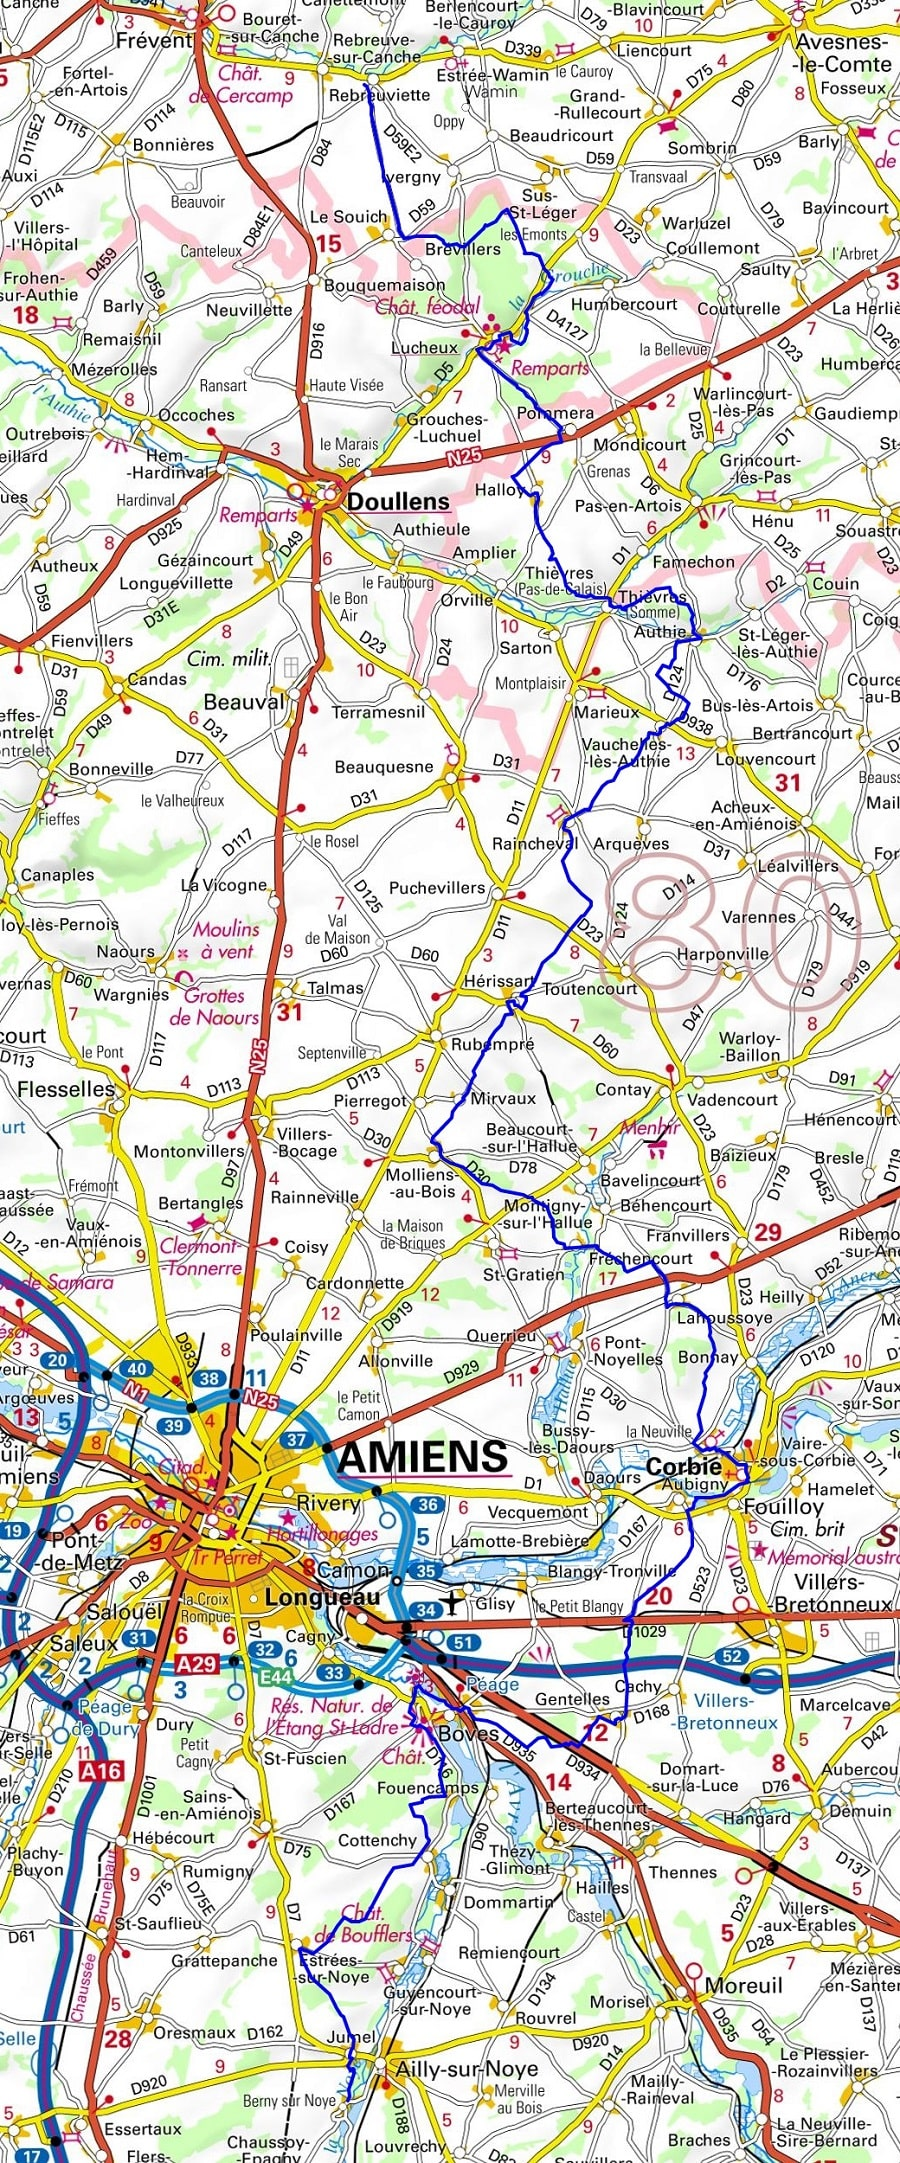 GR124 Walking from Cires-les-Mello (Oise) to Berny-sur-Noye (Somme)